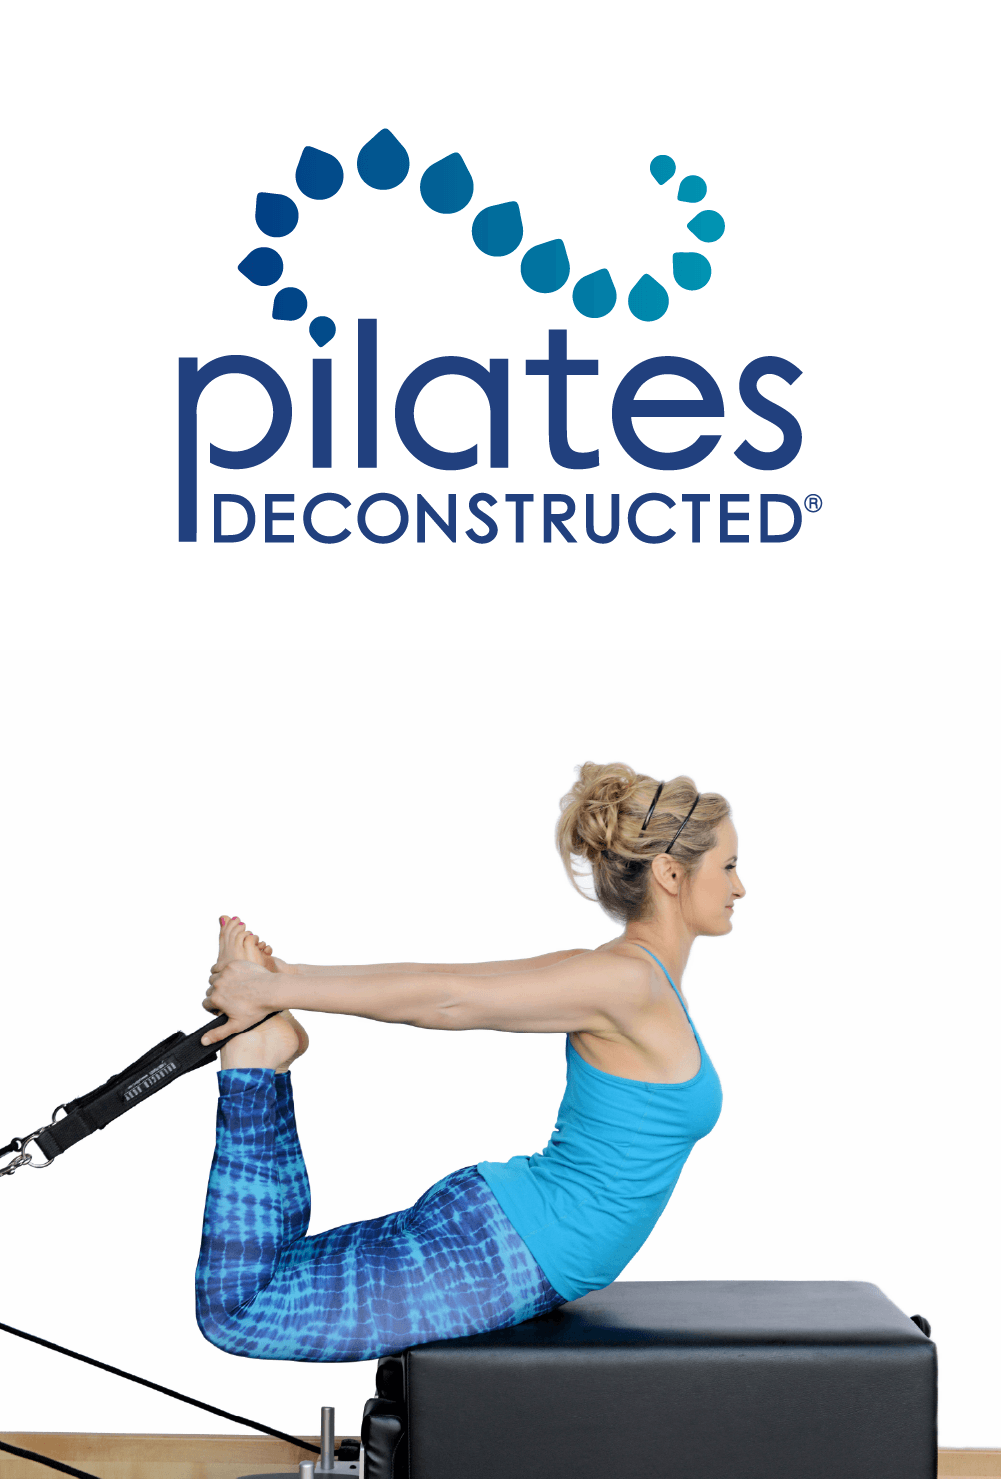 "I created Pilates Deconstructed® to explore multiple dimensions of movement in a joyful and integrated atmosphere that invigorates both mind and body. <br> <br> Blending Pilates, preparatory exercise, and sensory feedback methods, Pilates Deconstructed® helps you stay injury-free while improving strength, mobility, coordination, and overall well-being. <br> <br> <a class=""button"" href=""https://trinaaltman.com/pilates-deconstructed/"">LEARN MORE</a>"